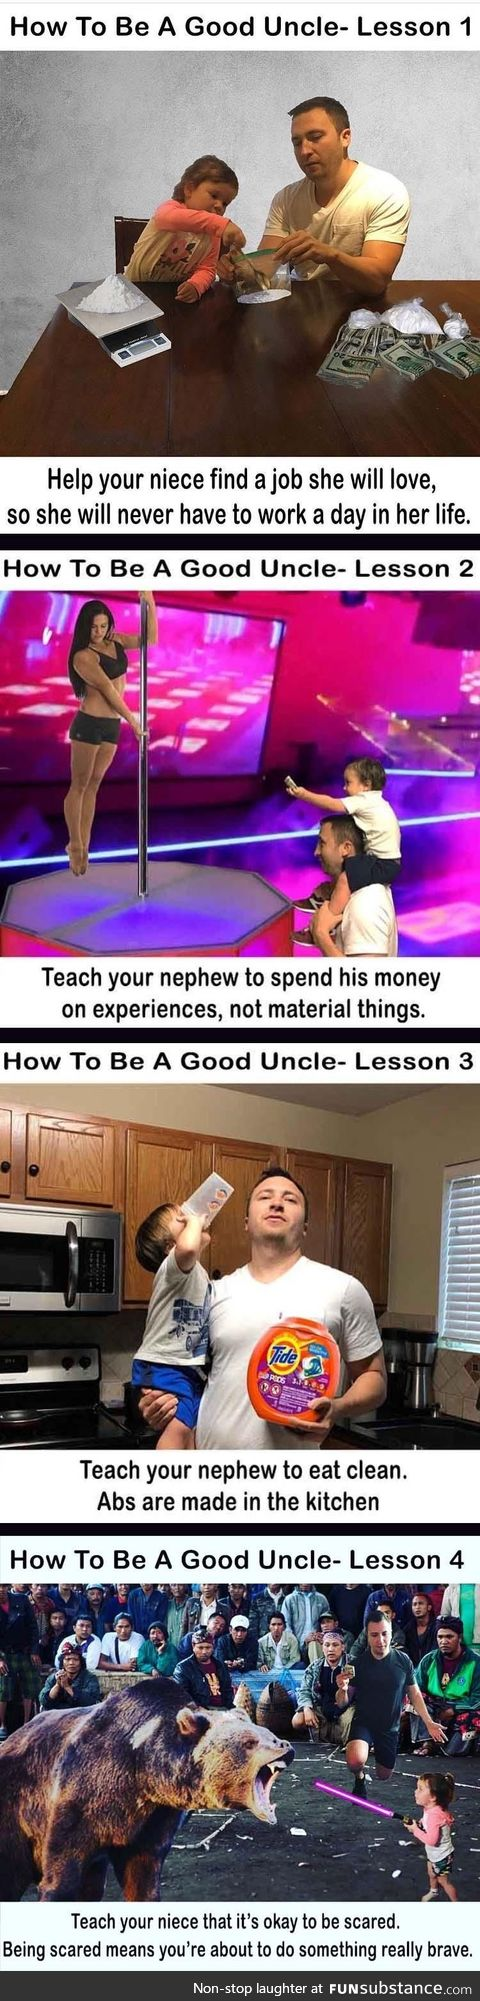 How to be a good uncle